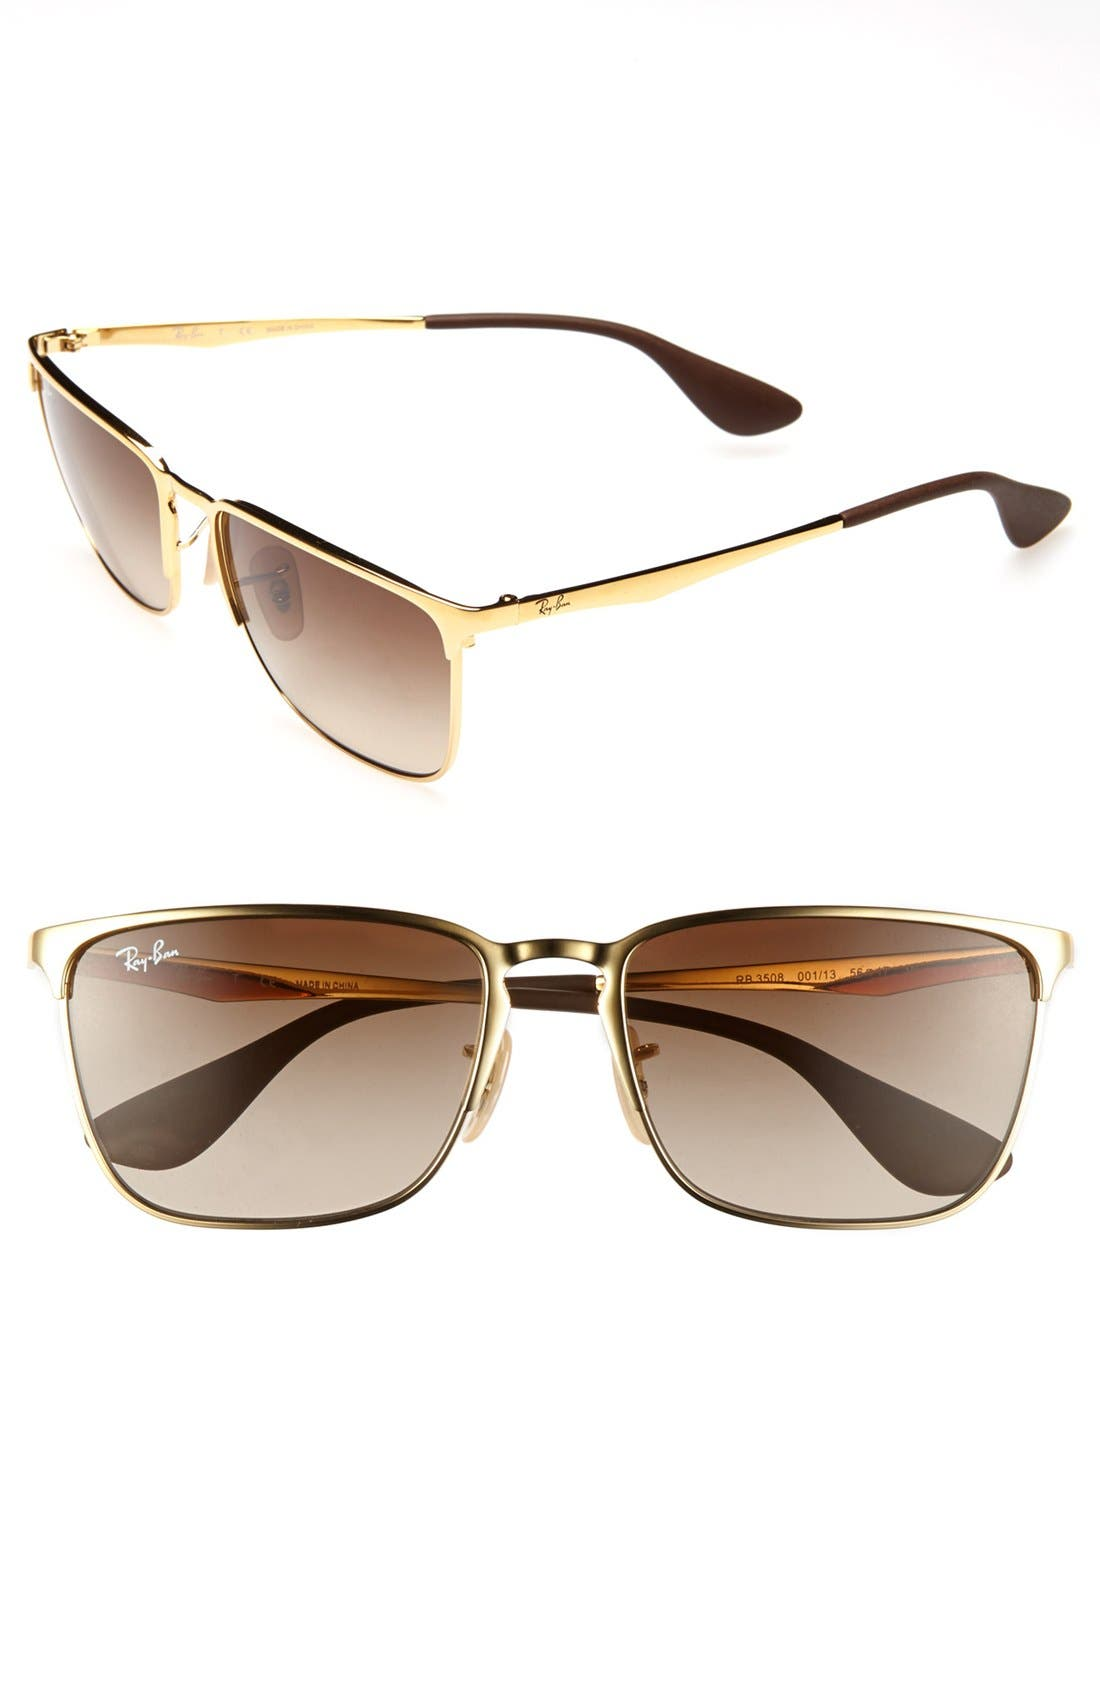 Alternate Image 1 Selected - Ray-Ban 'Youngster' 56mm Sunglasses